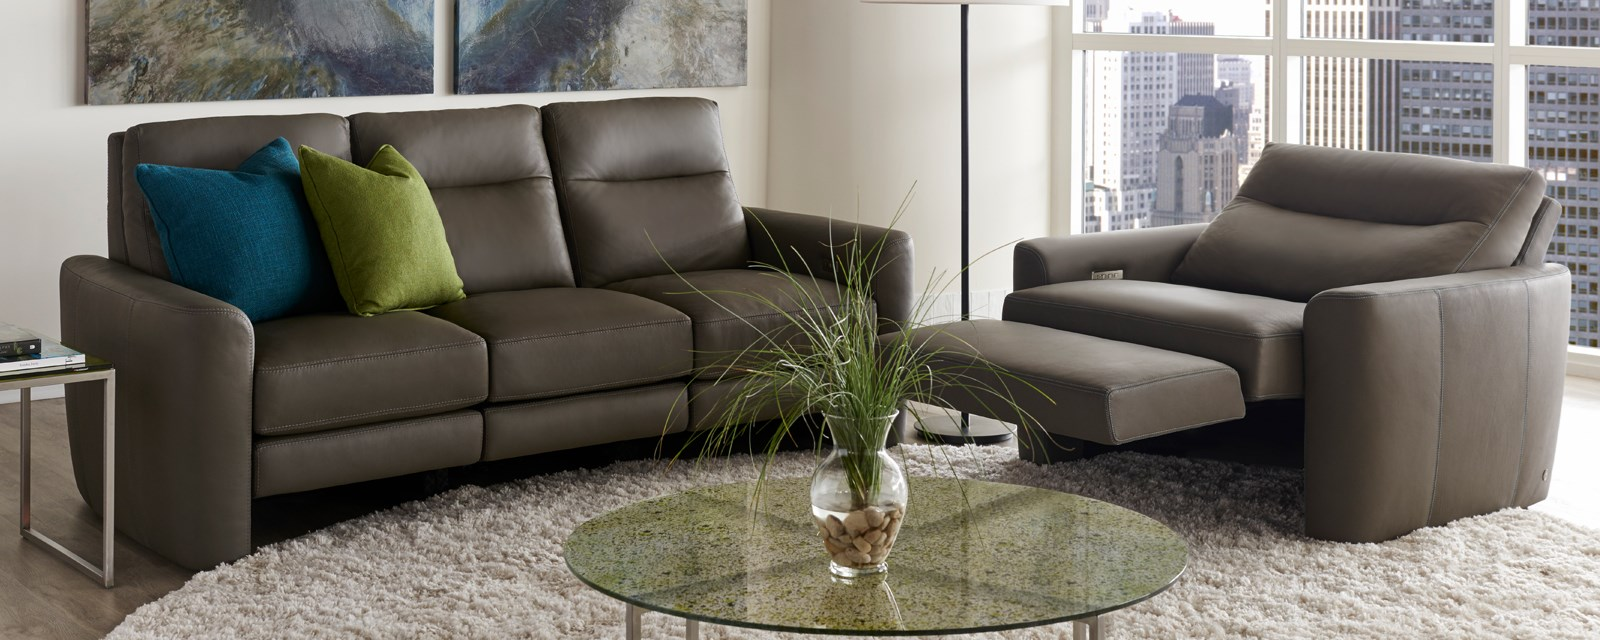 recliners-&-motion